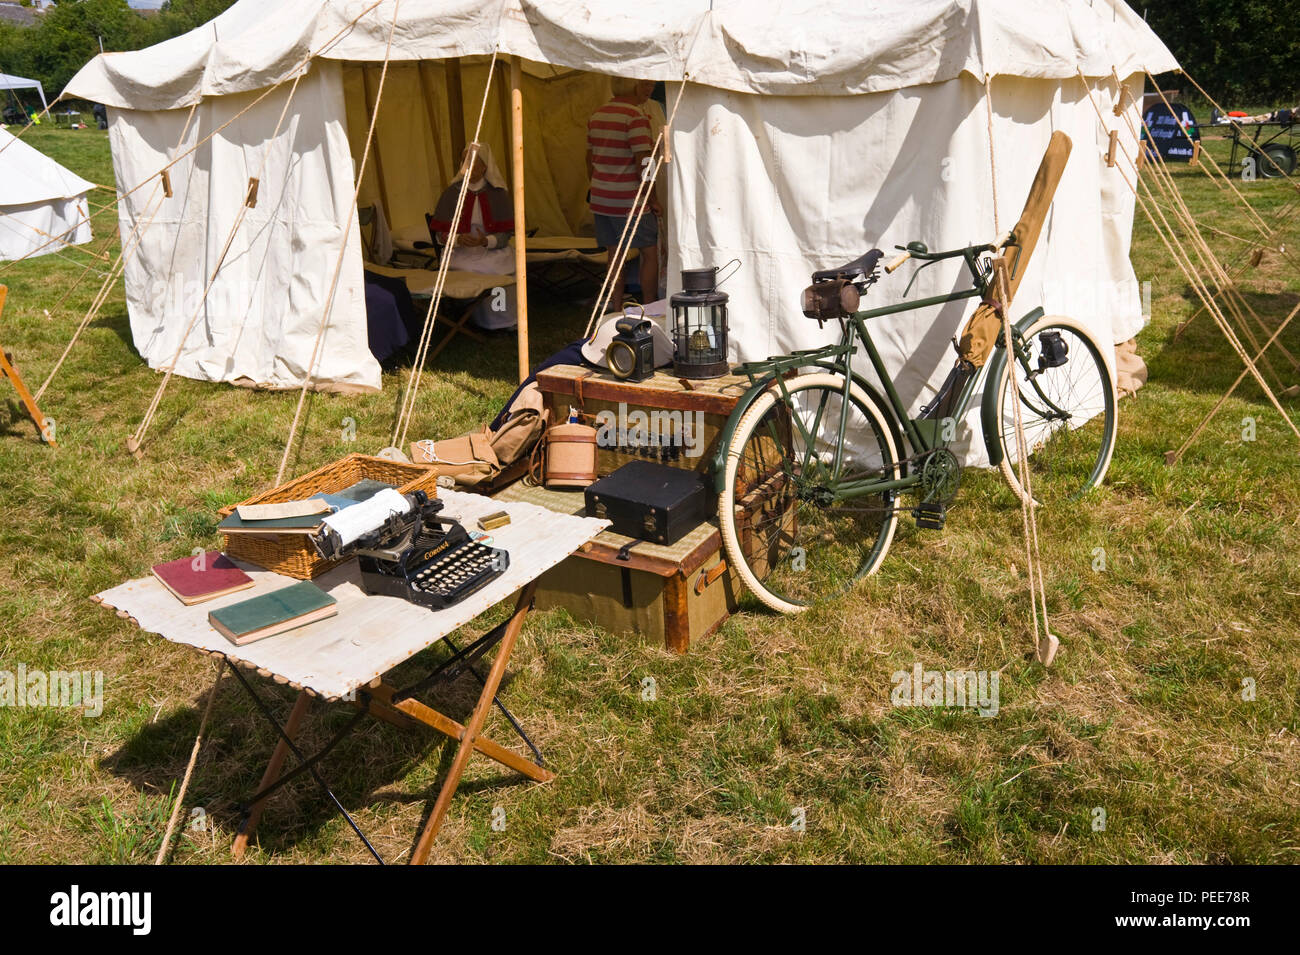 World War One living history reenactment tent at Hay-on-Wye